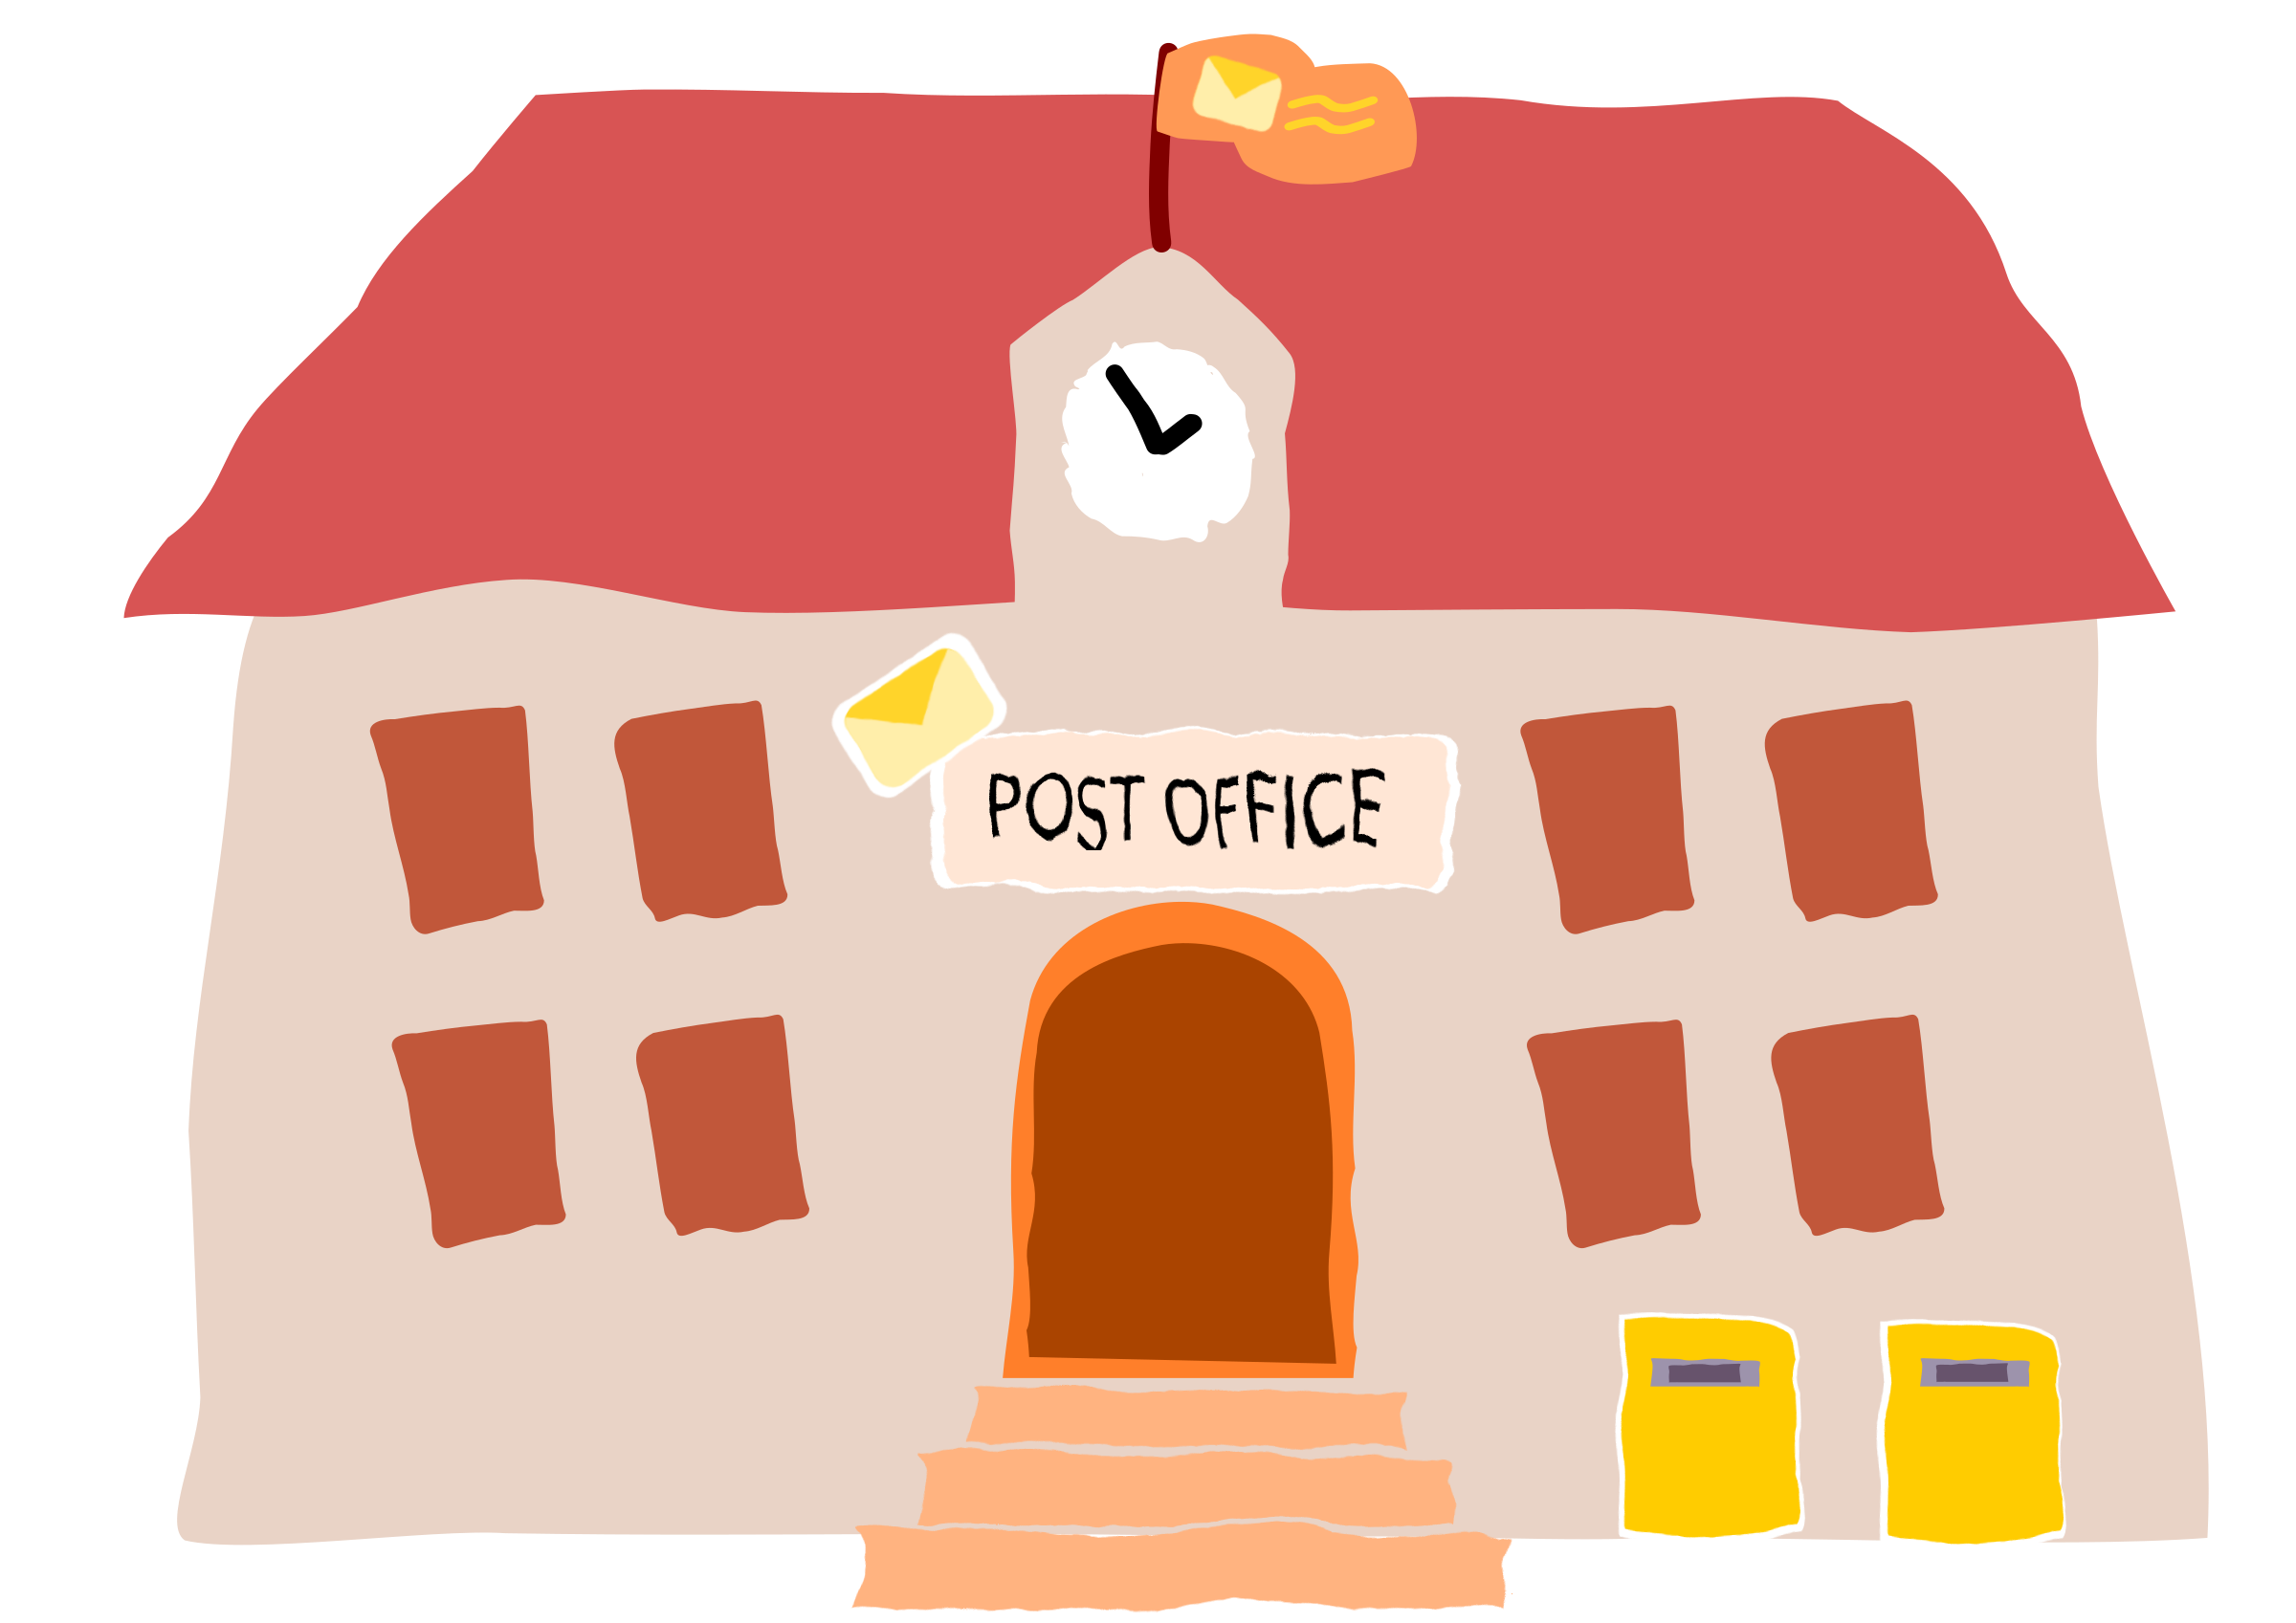 Office clipart post office Office Post Crooked Clipart Crooked